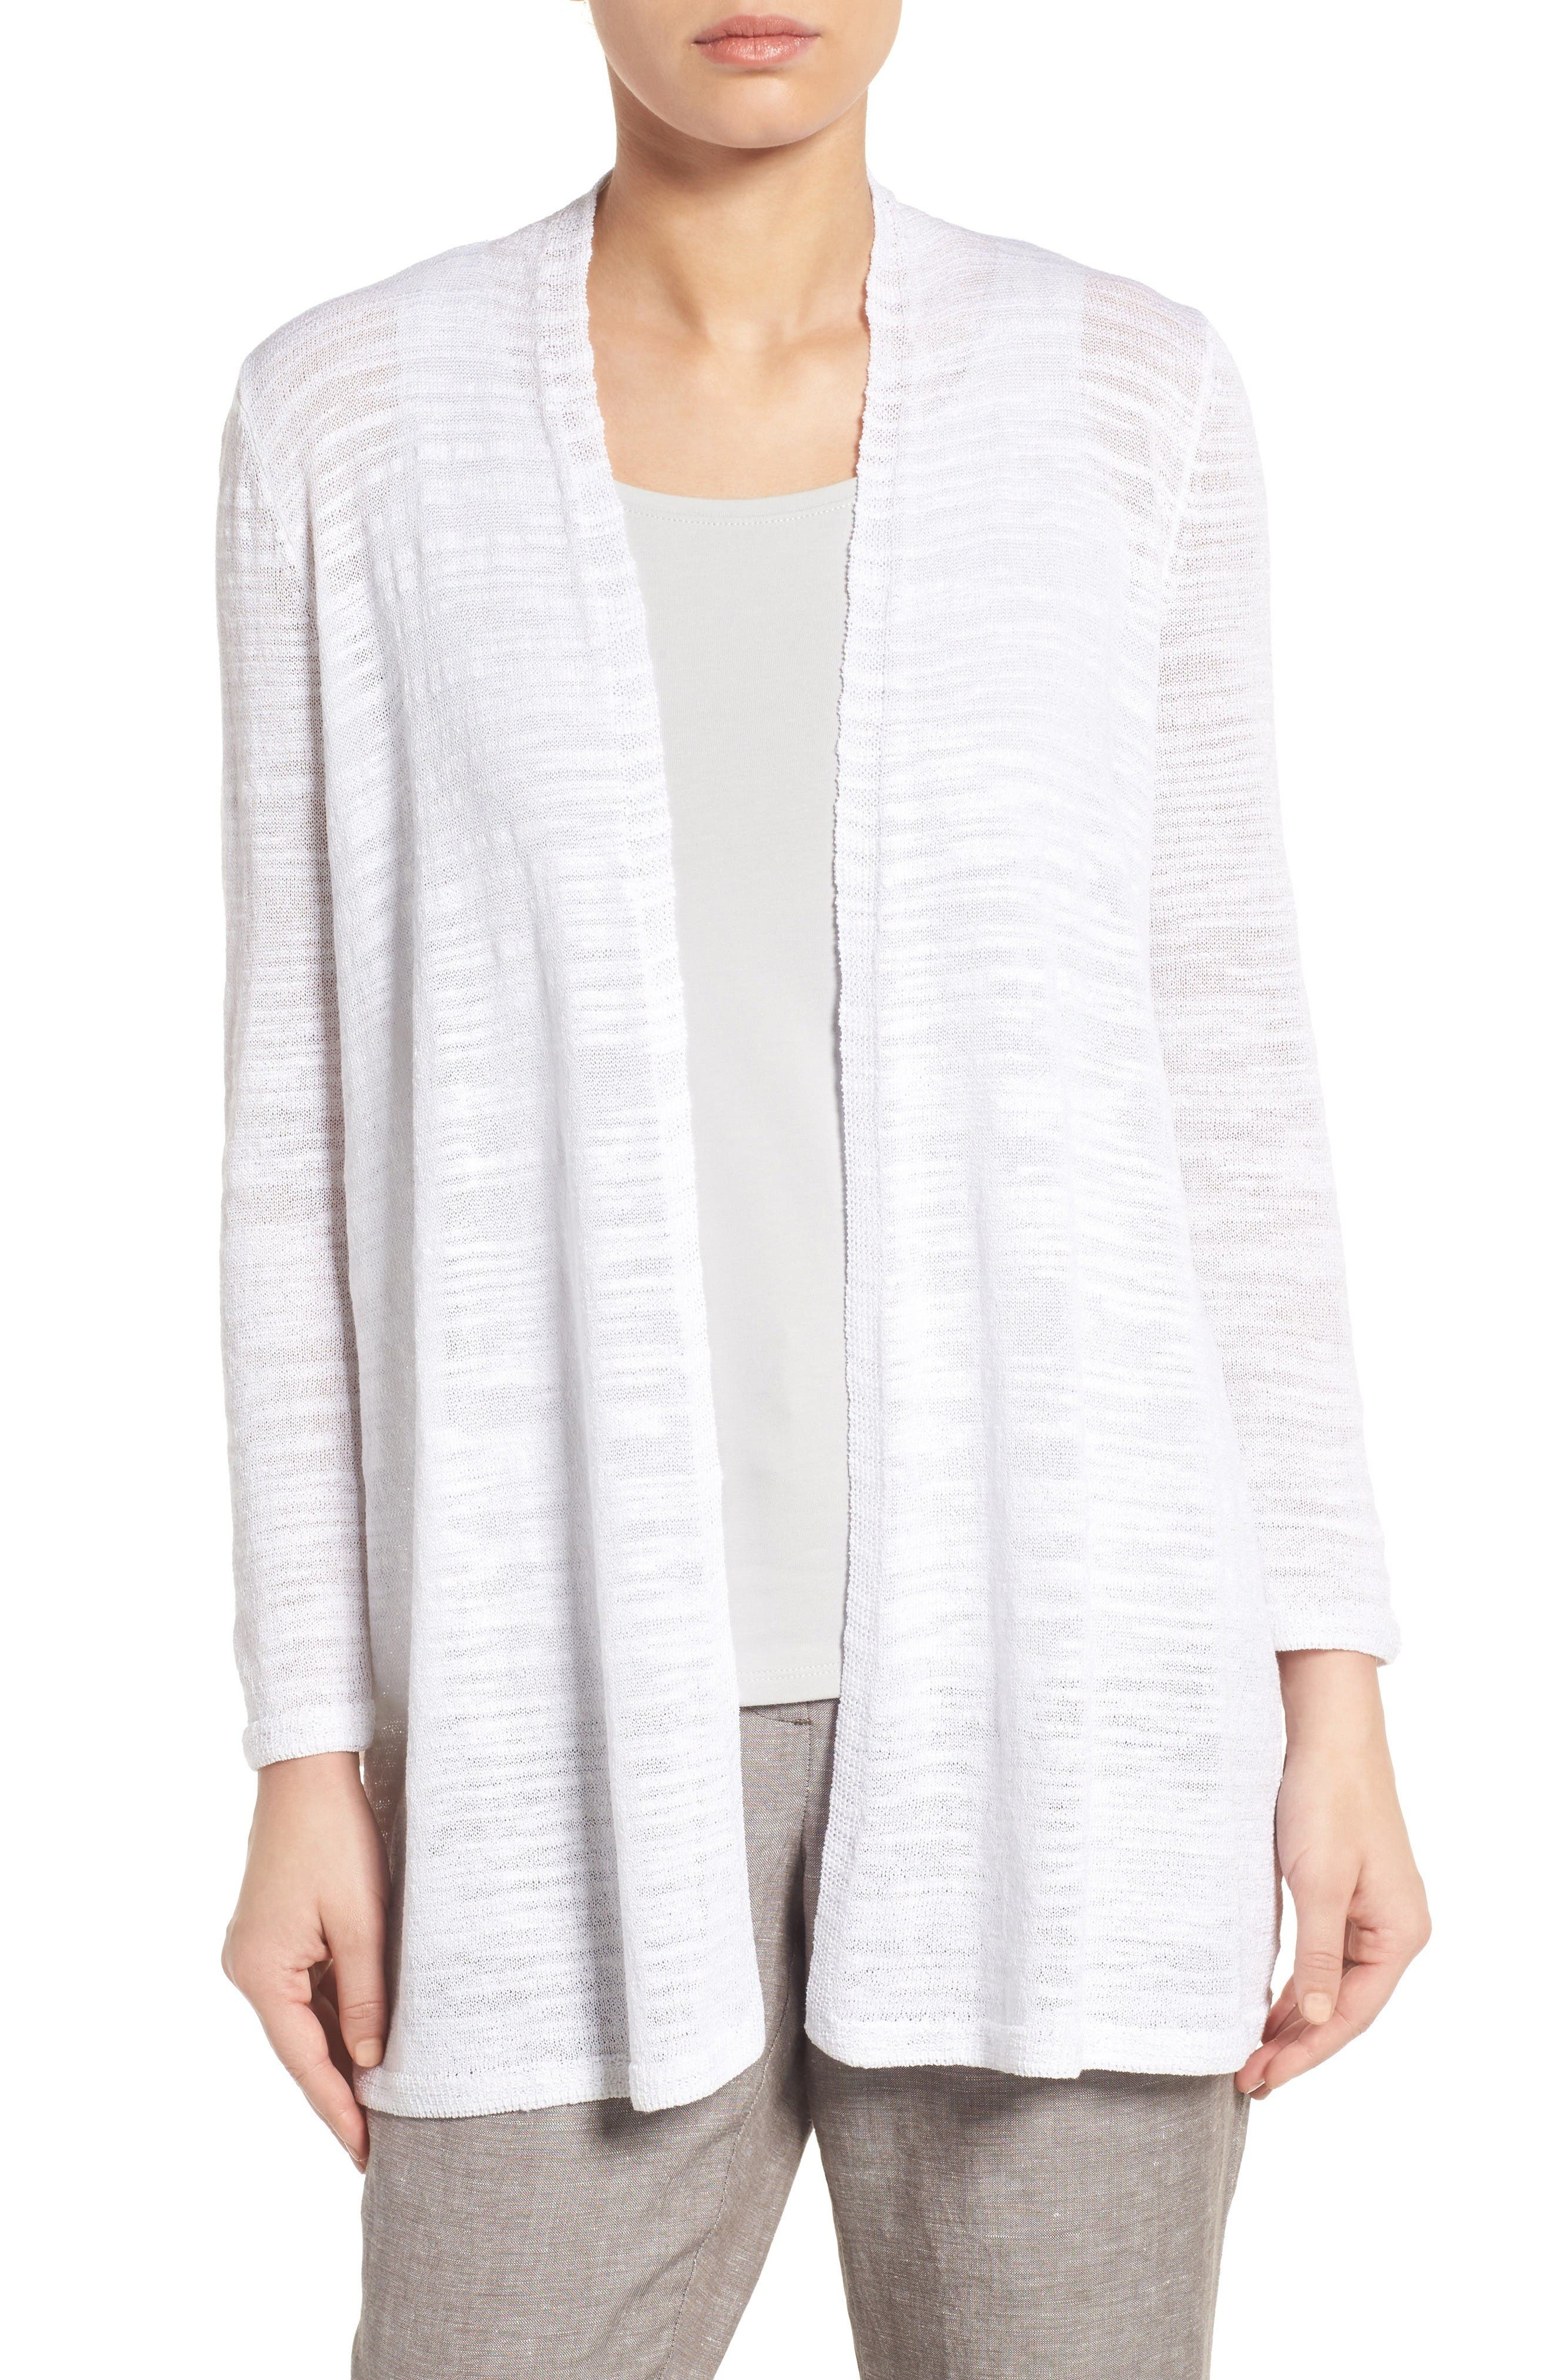 Alternate Image 1 Selected - NIC+ZOE Islet Slub Knit Cardigan (Regular & Petite)